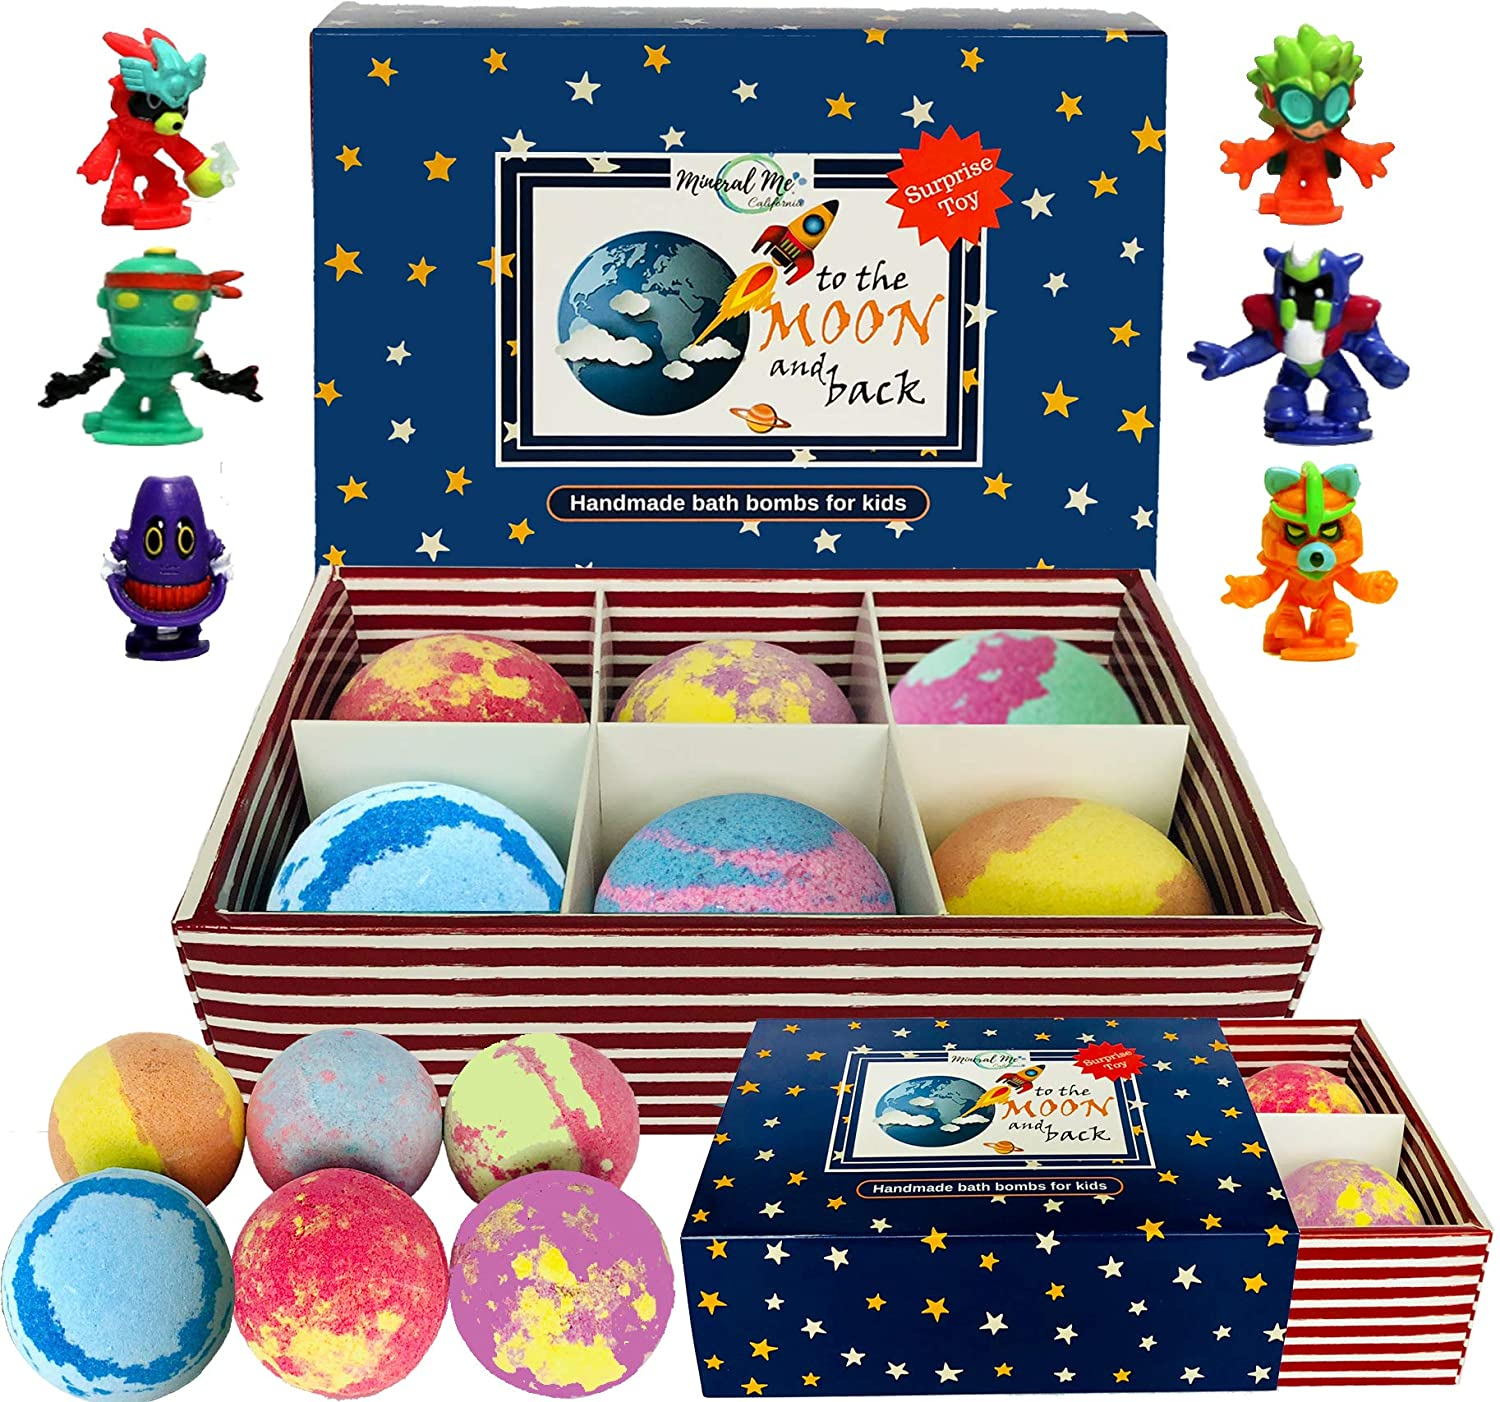 6 Pcs Bath Bombs for Kids with Toys Inside for $7.99 Shipped! (Reg.Price $19.99)